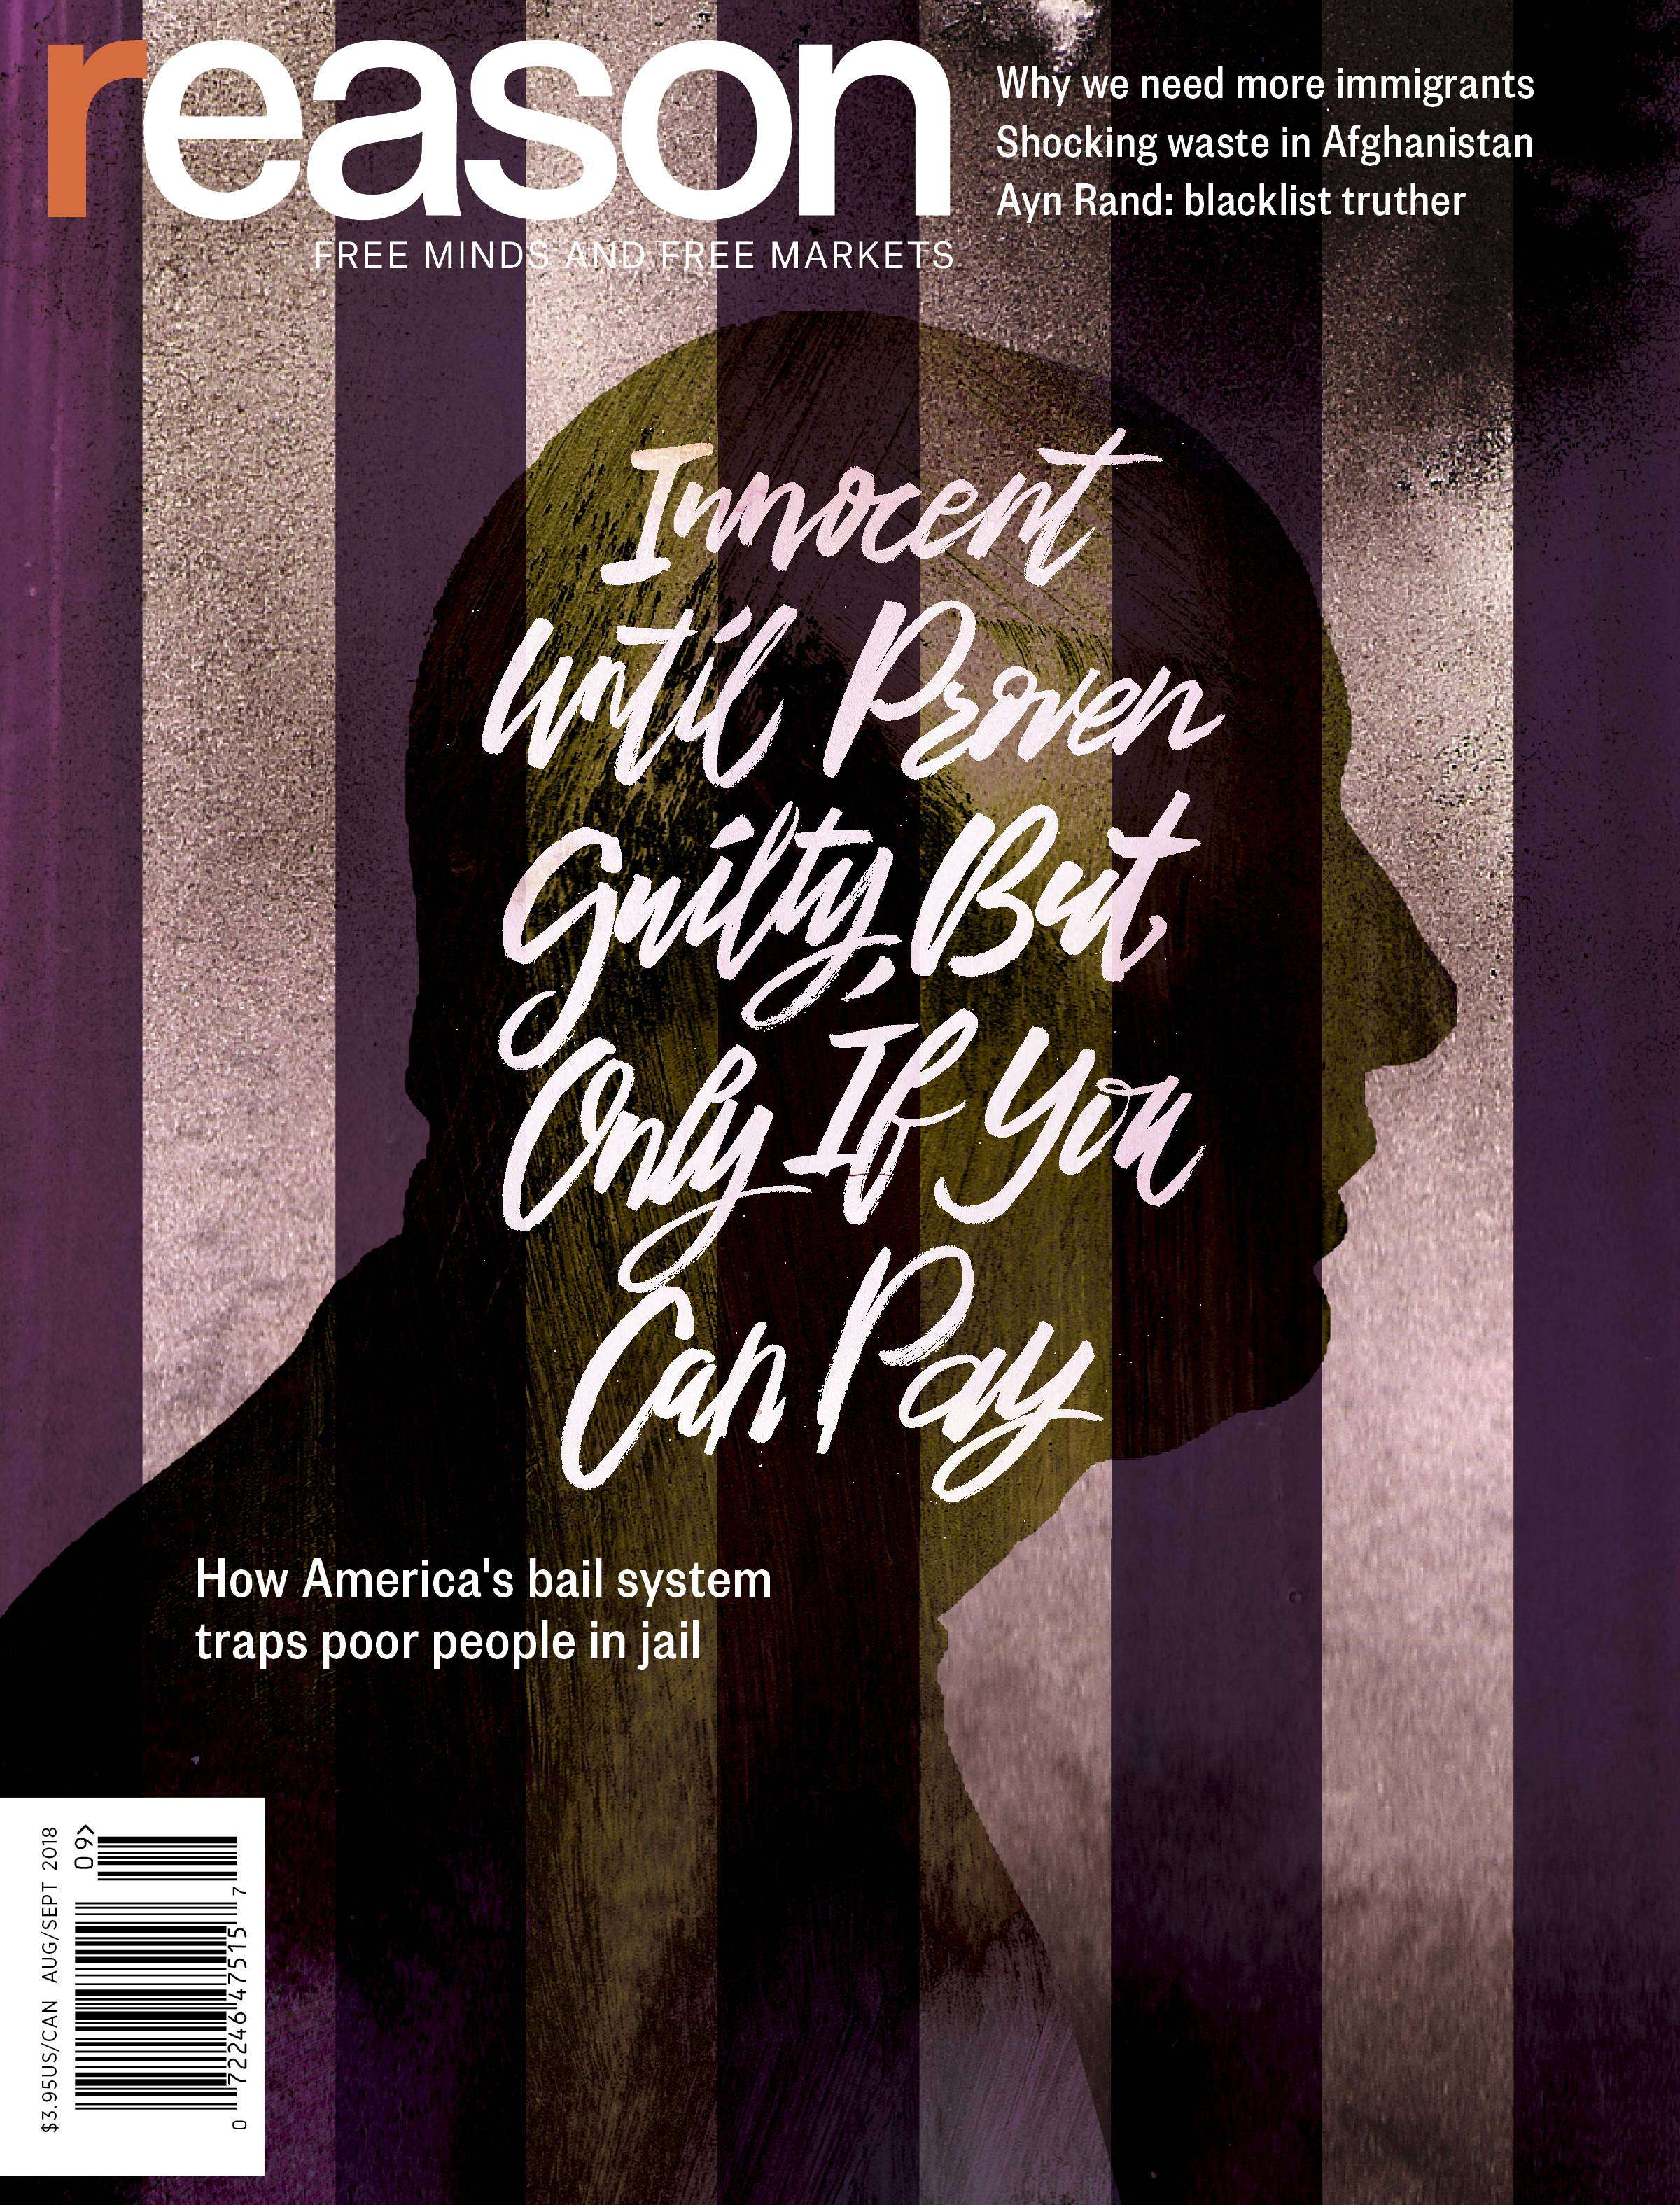 Reason bail cover story